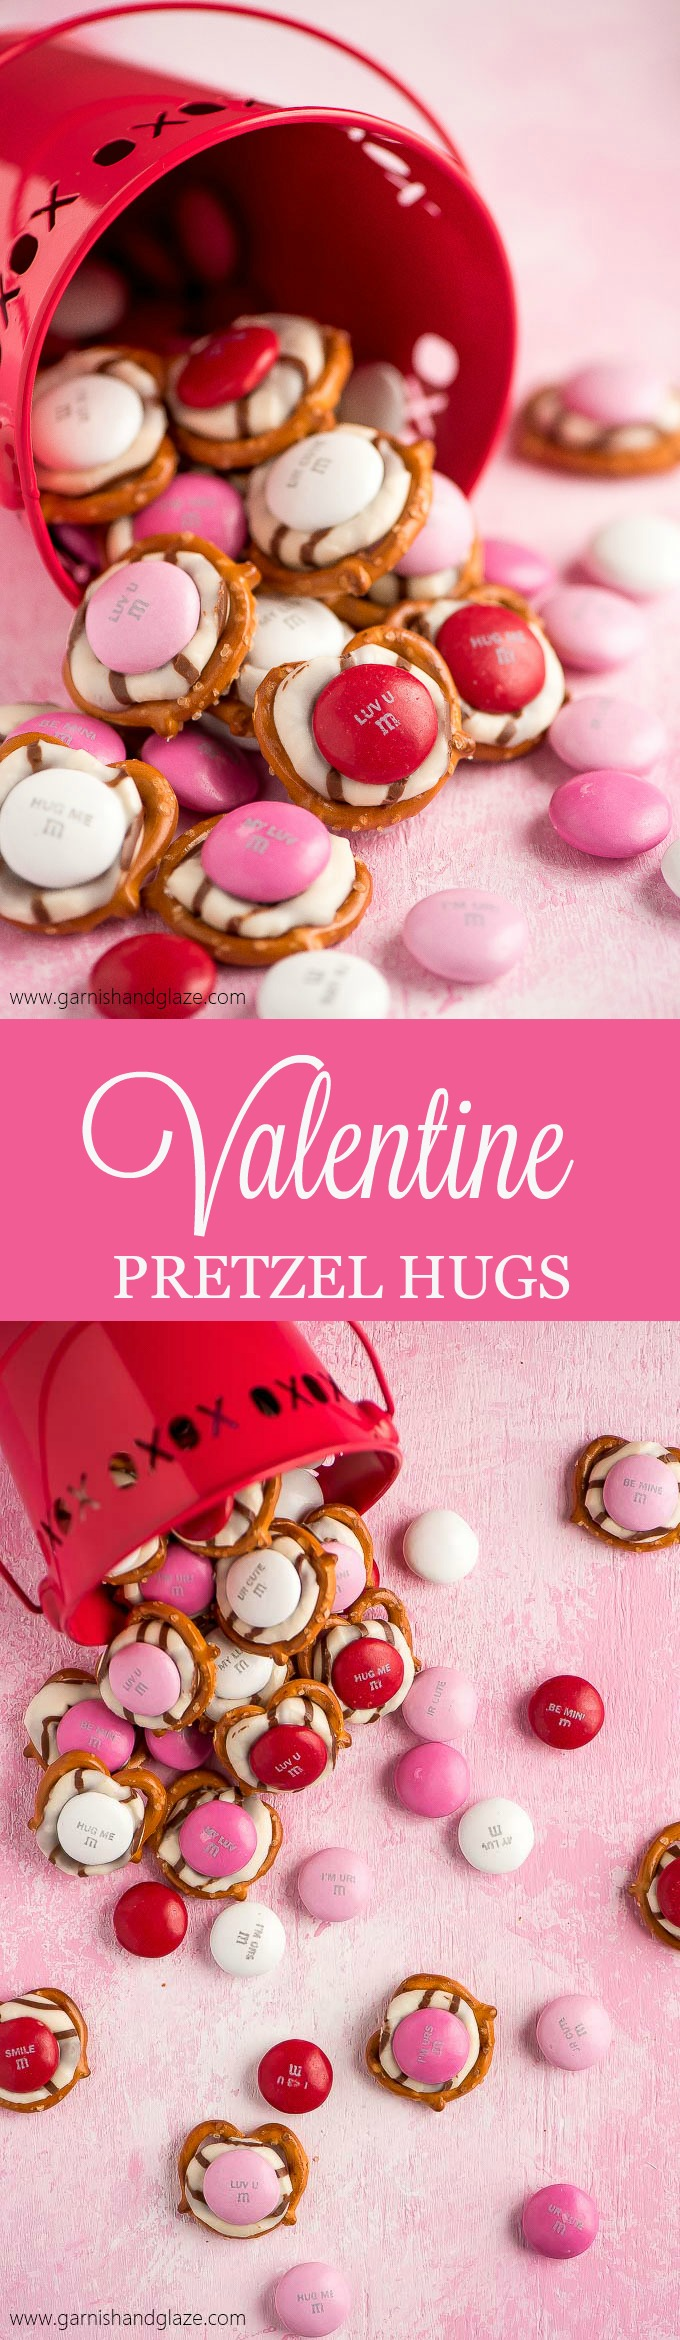 It takes just 3 ingredients to throw together these perfectly cute, extremely easy, and super yummy Valentine Pretzel Hugs.